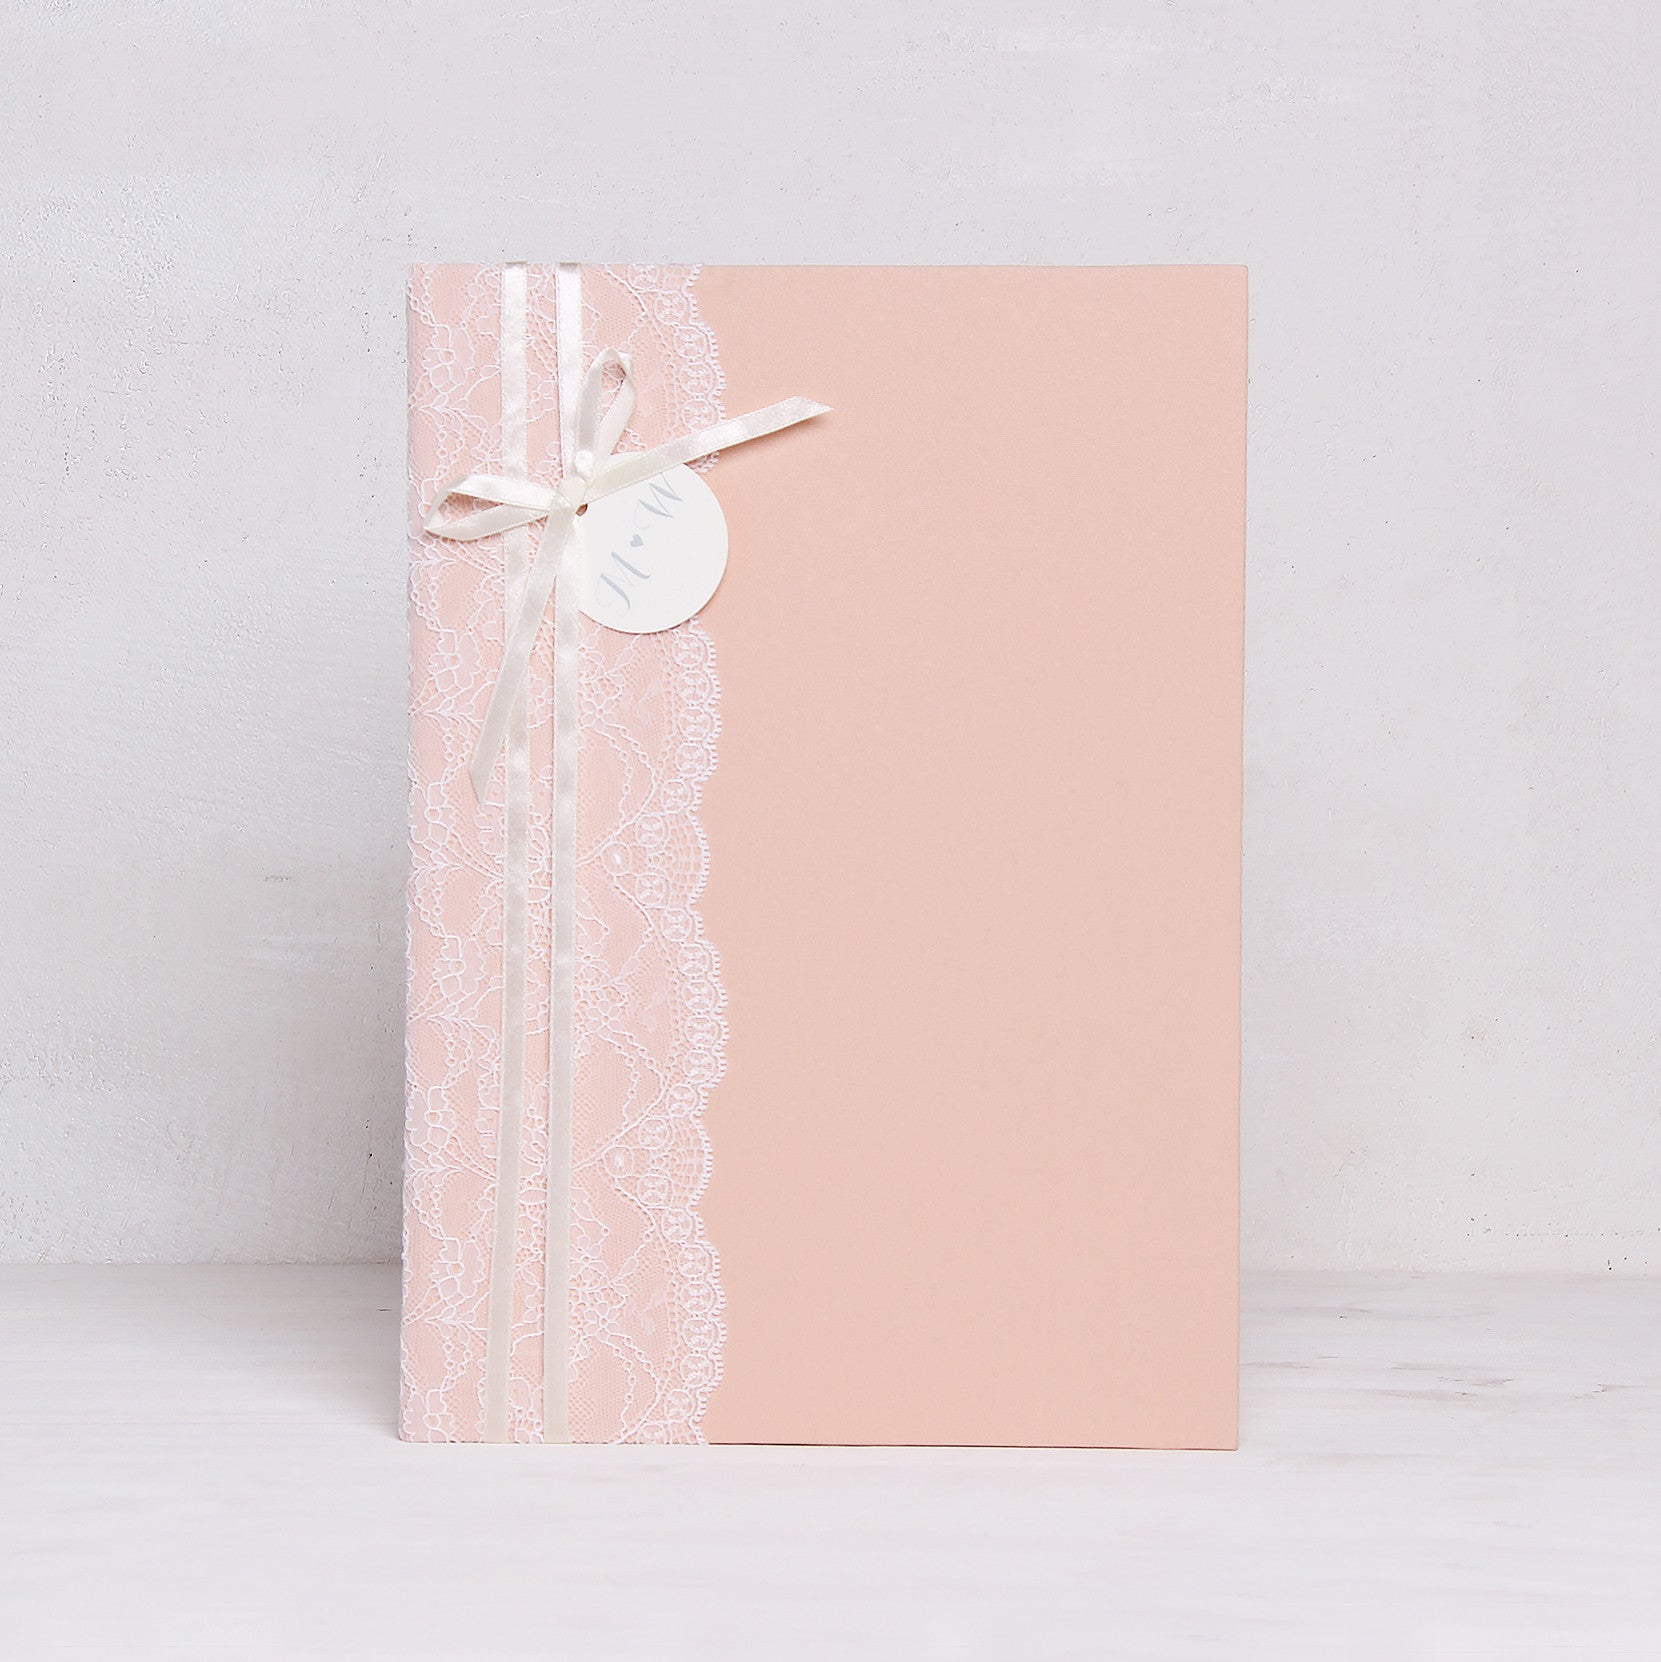 Instax Guest Book Wedding Album Instant Light Peach with Lace Names in First Page by Liumy - Liumy